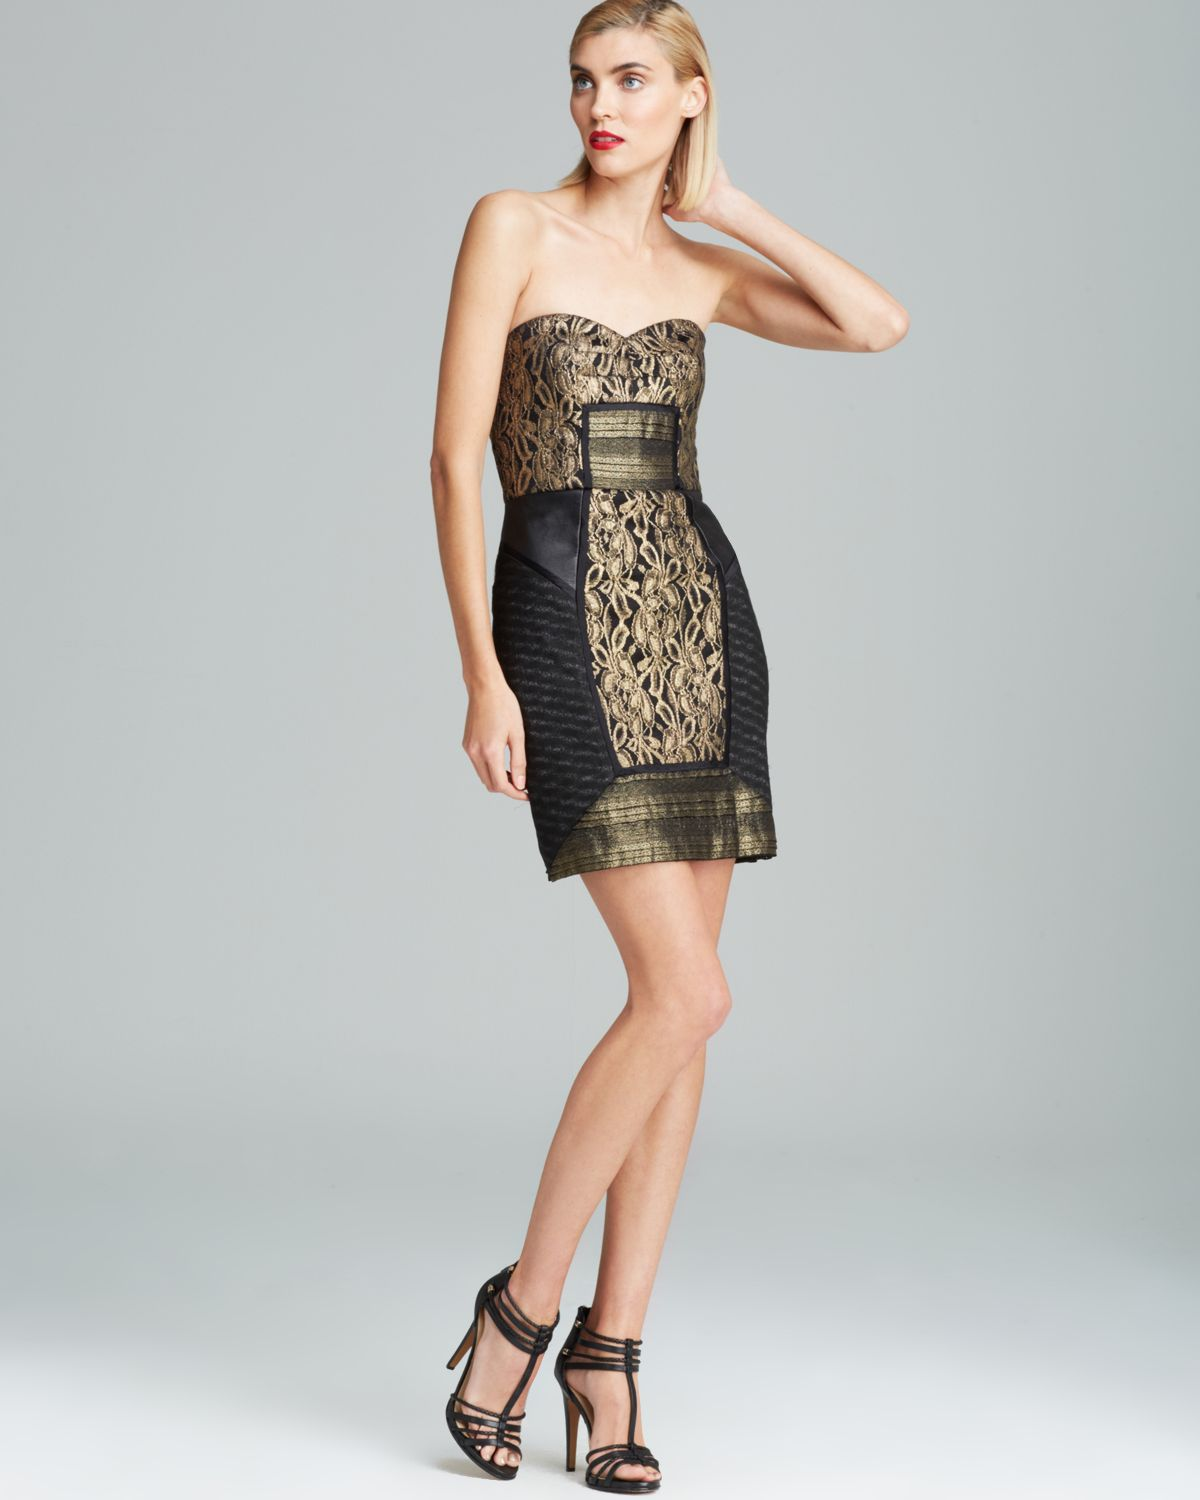 Nicole miller Strapless Metallic Lace Dress in Metallic | Lyst